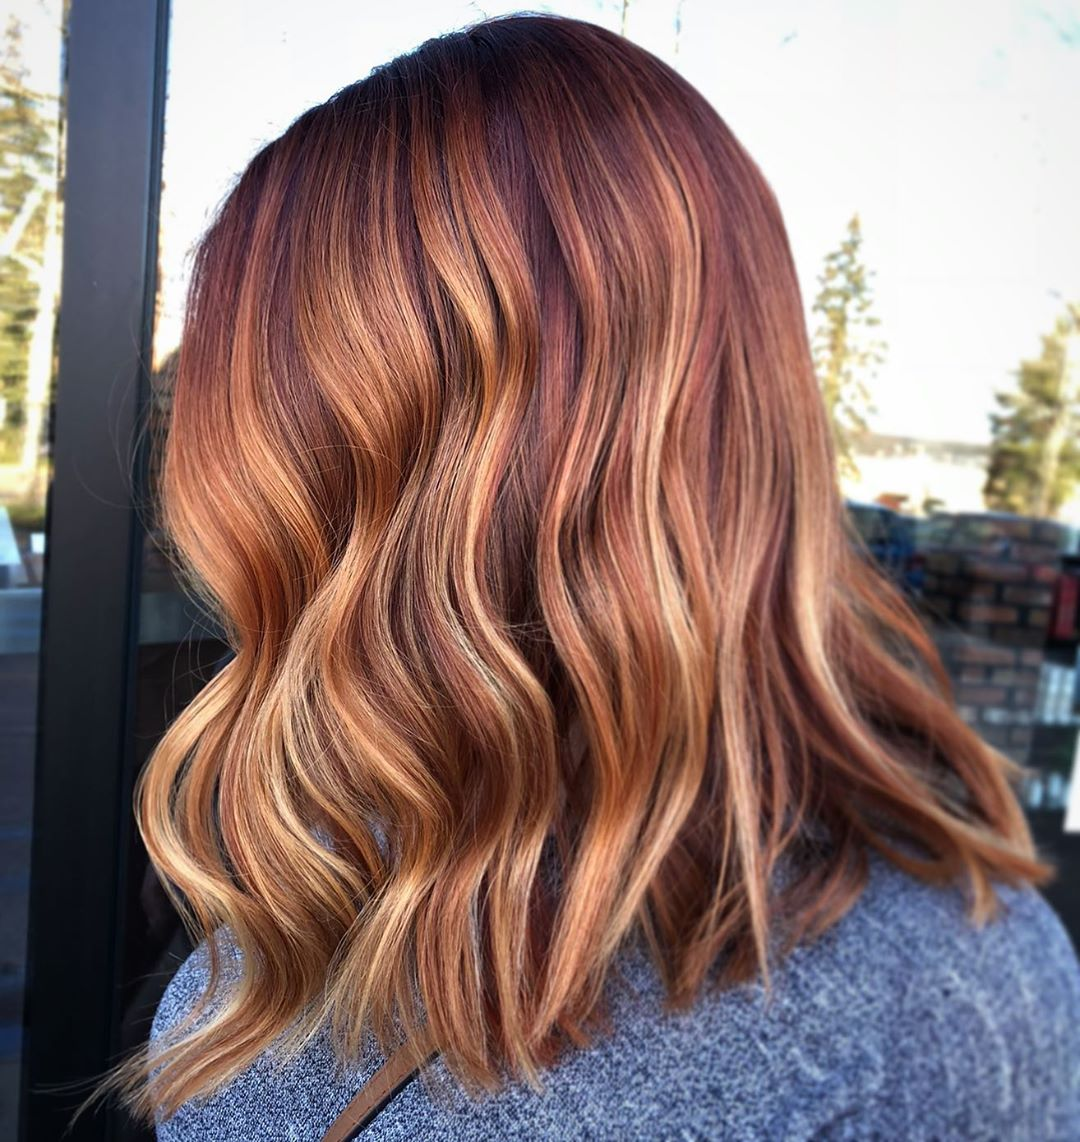 Strawberry Blonde Hair Color Idea for Brunettes